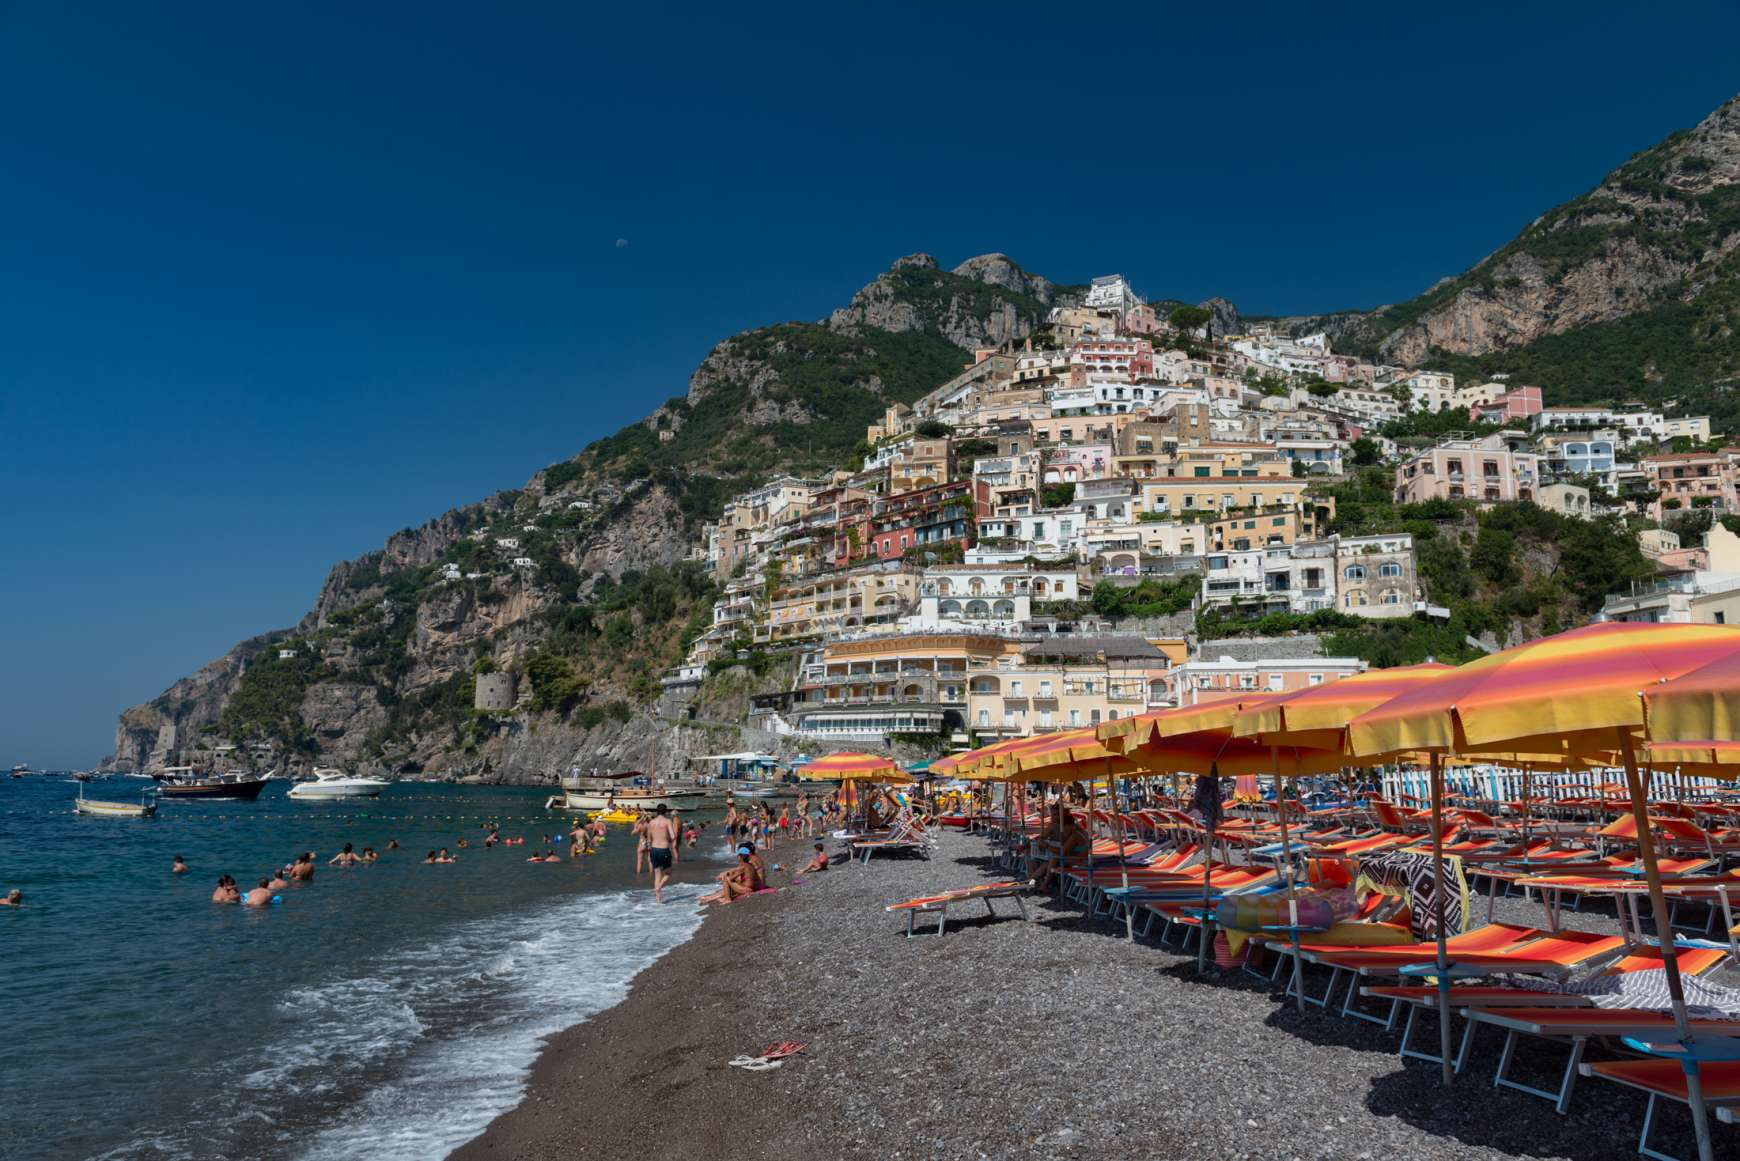 View of black sand beach with Positano rising in the background